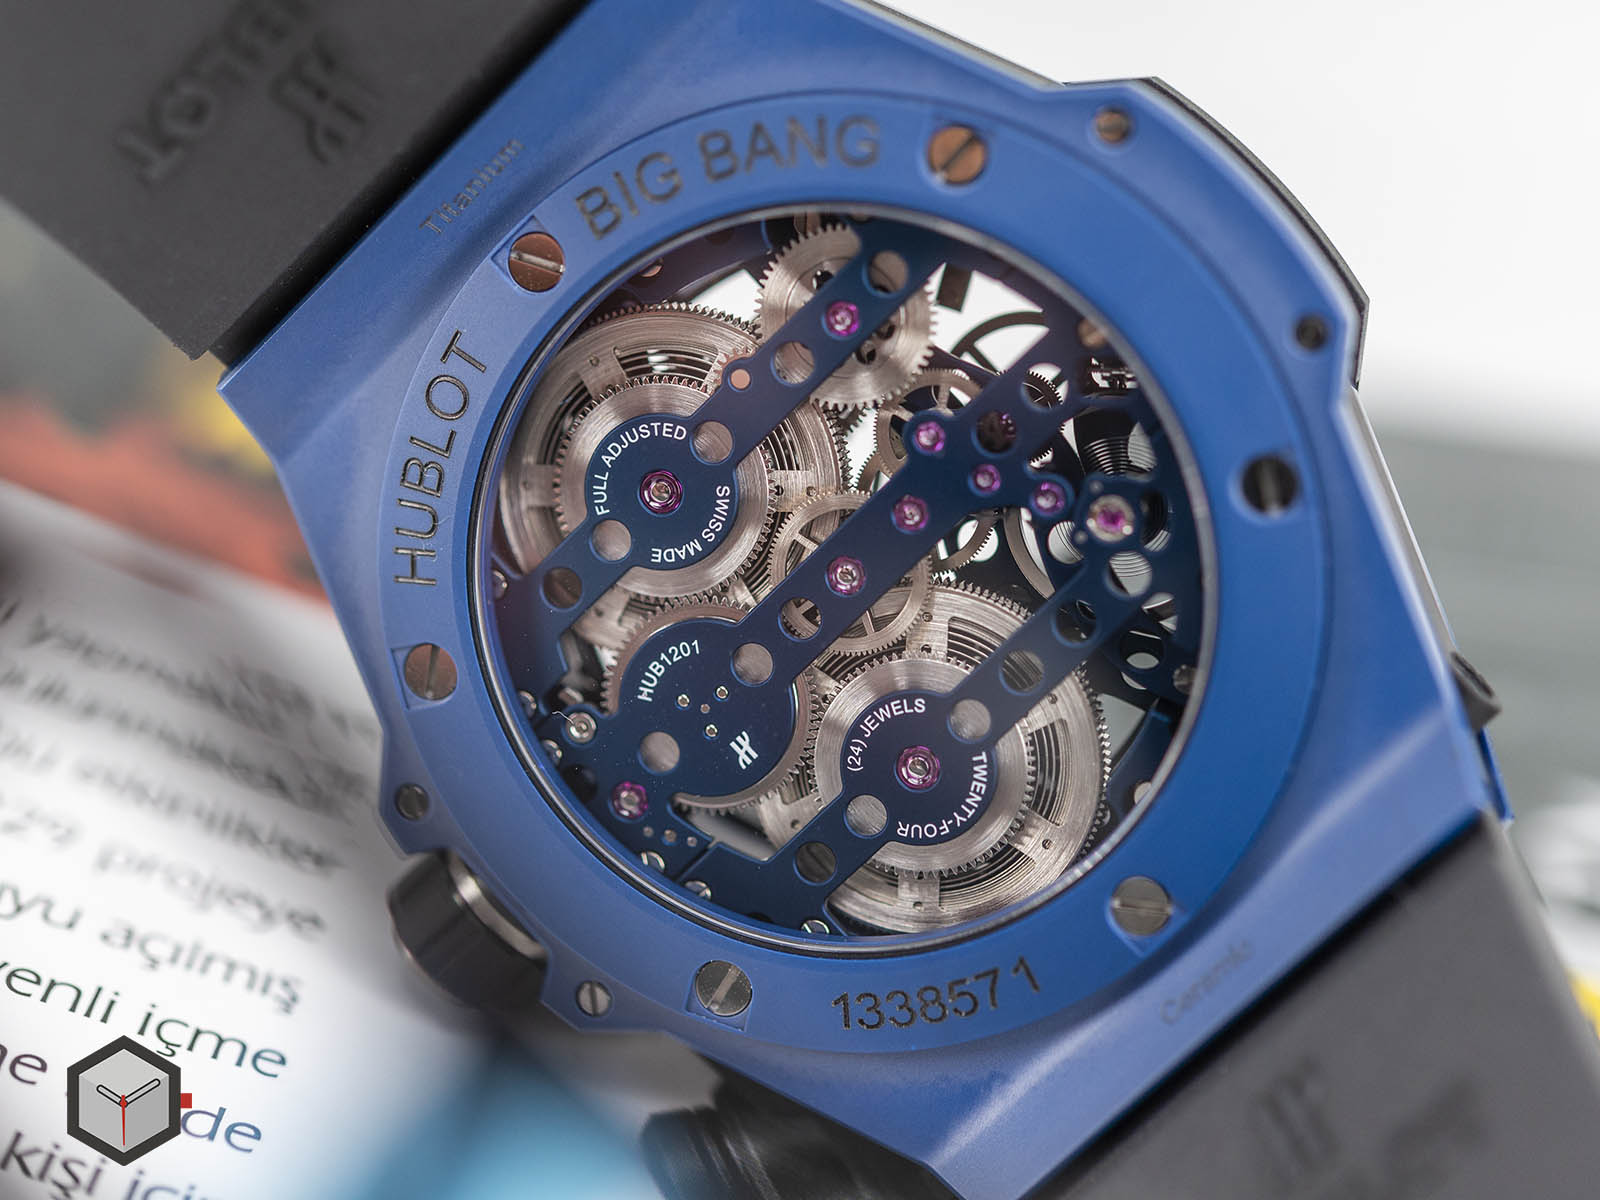 414-ex-5123-rx-hublot-big-bang-meca-10-ceramic-blue-45mm-8.jpg